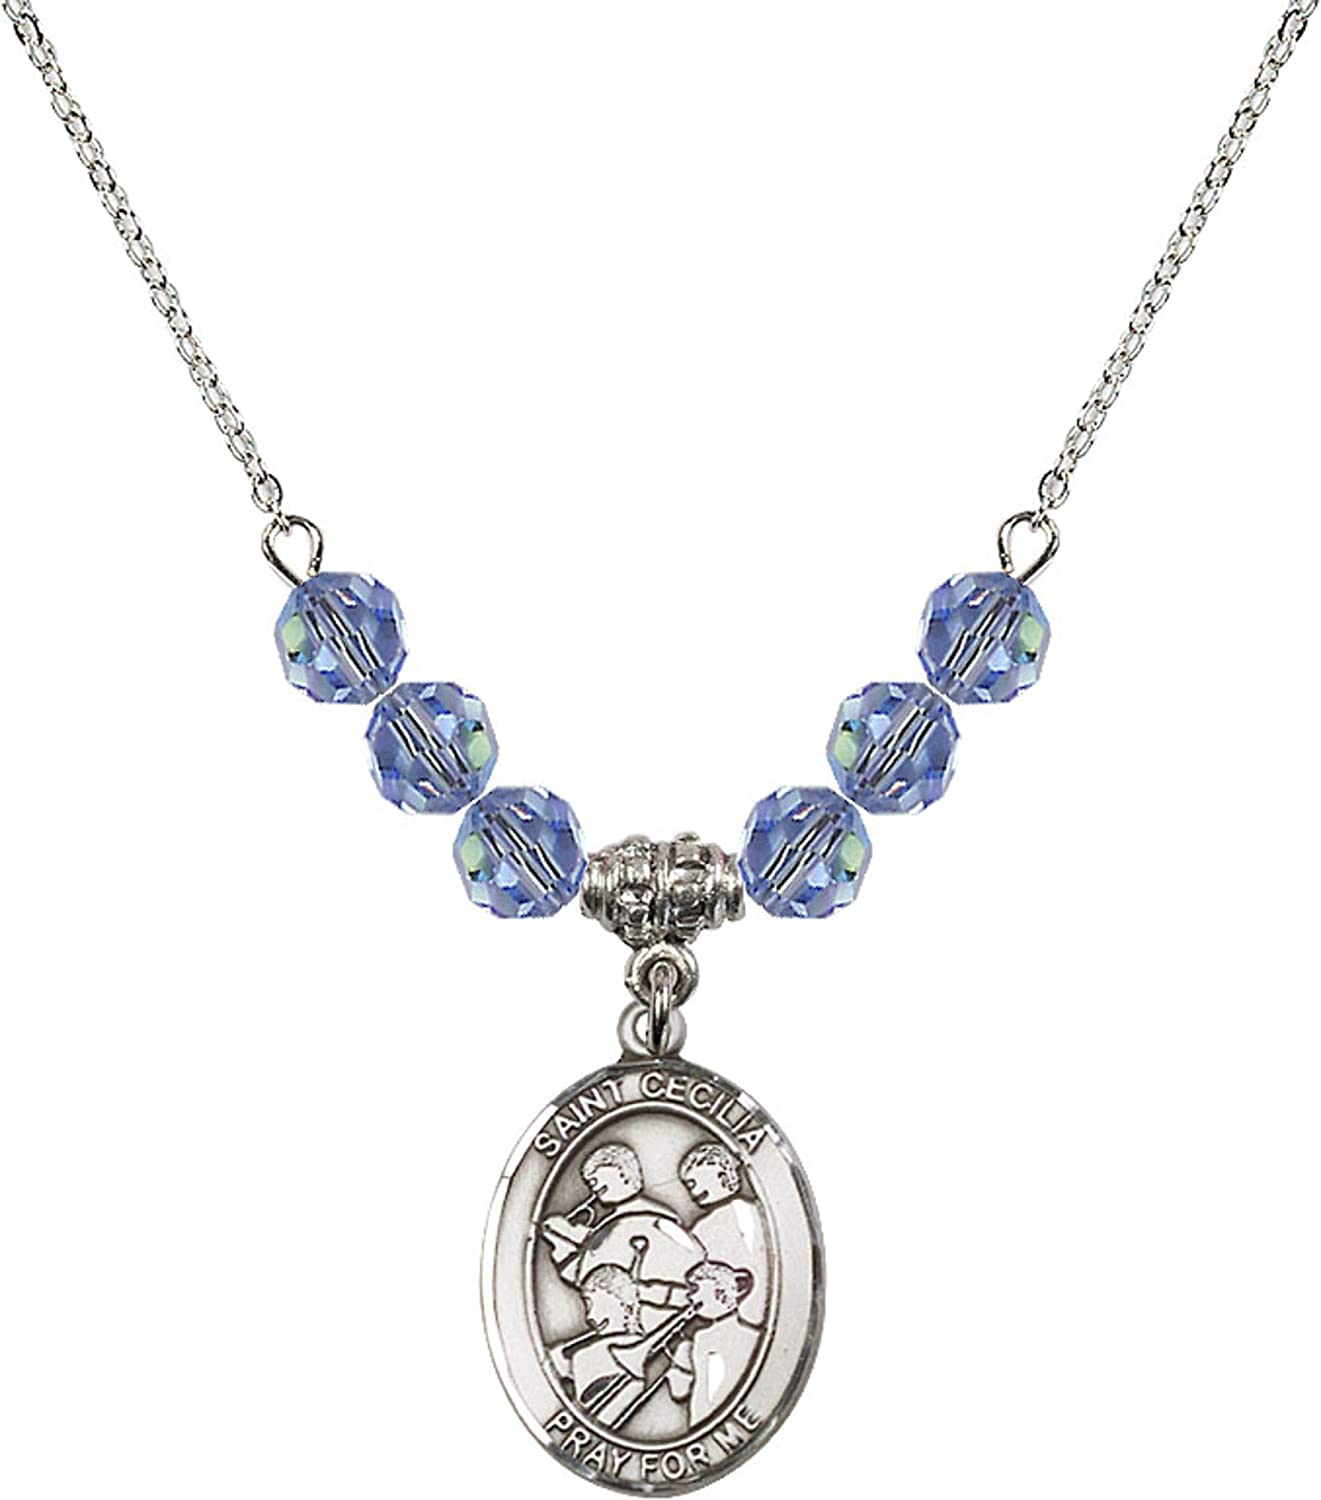 Bonyak Jewelry 18 Inch Rhodium Plated Necklace w// 6mm Sterling Silver Beads and Saint Cecilia Charm